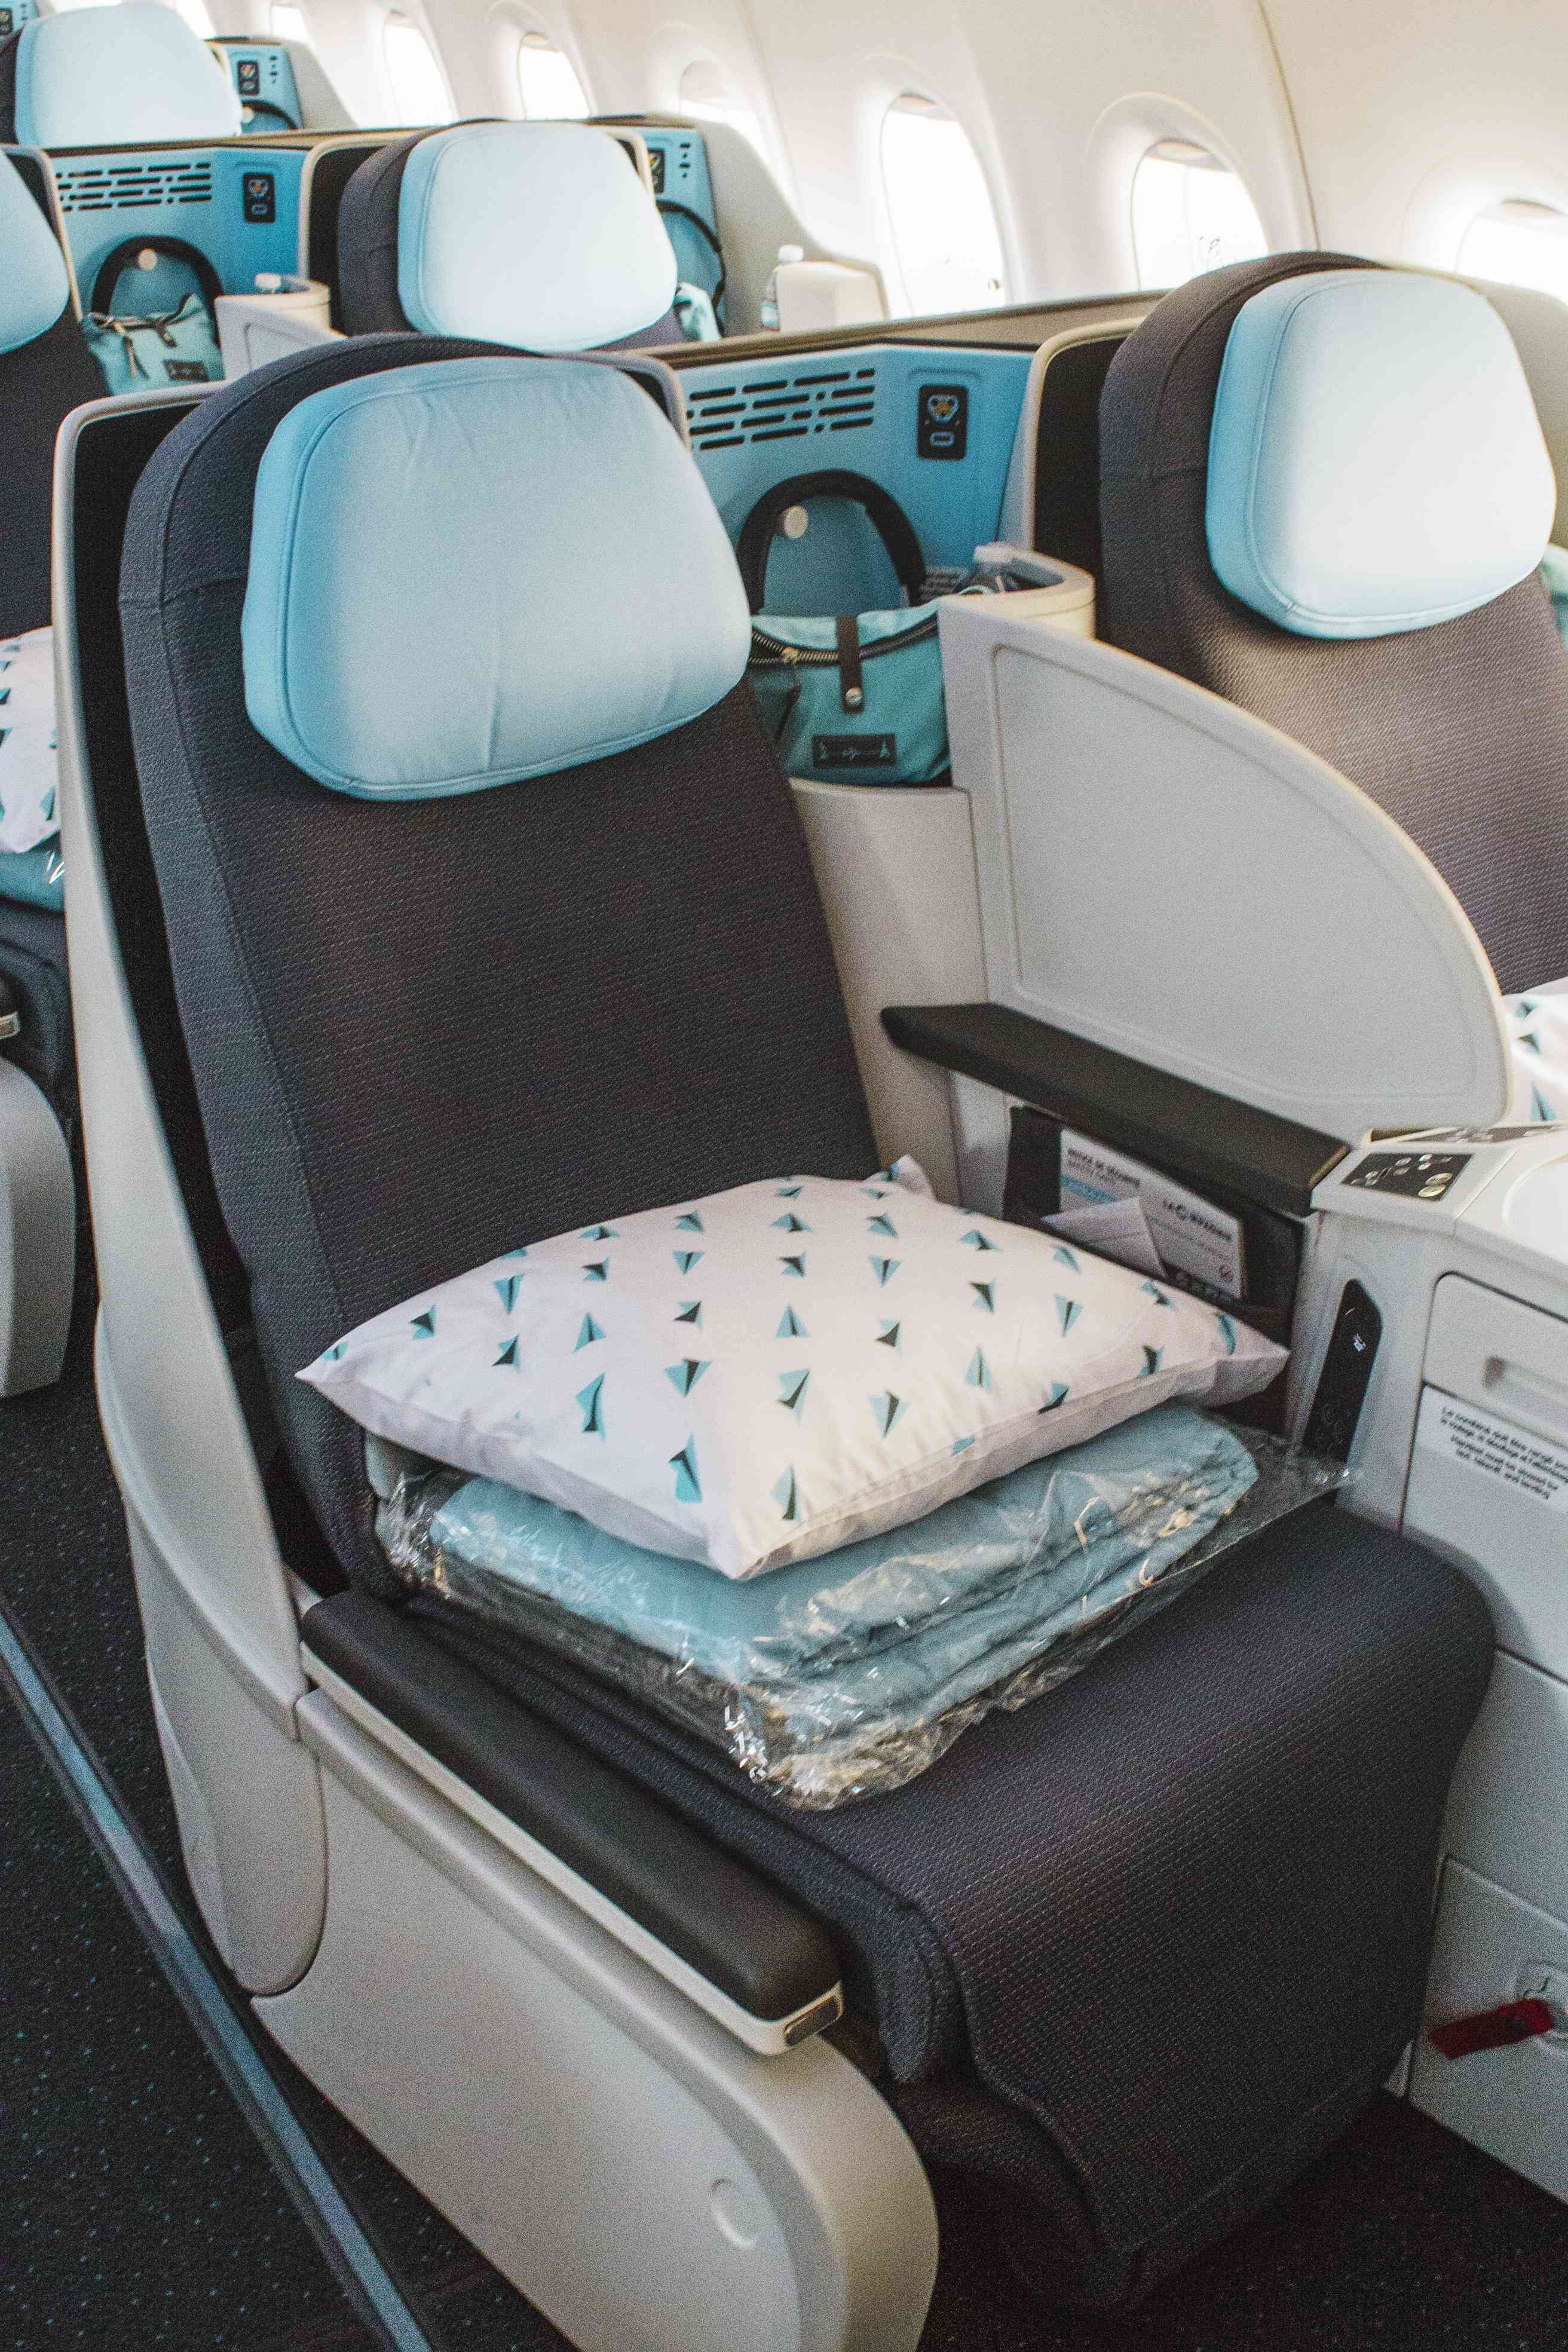 A shot of the full seat with the pillow and bedding with view of the headphones and amenity kit